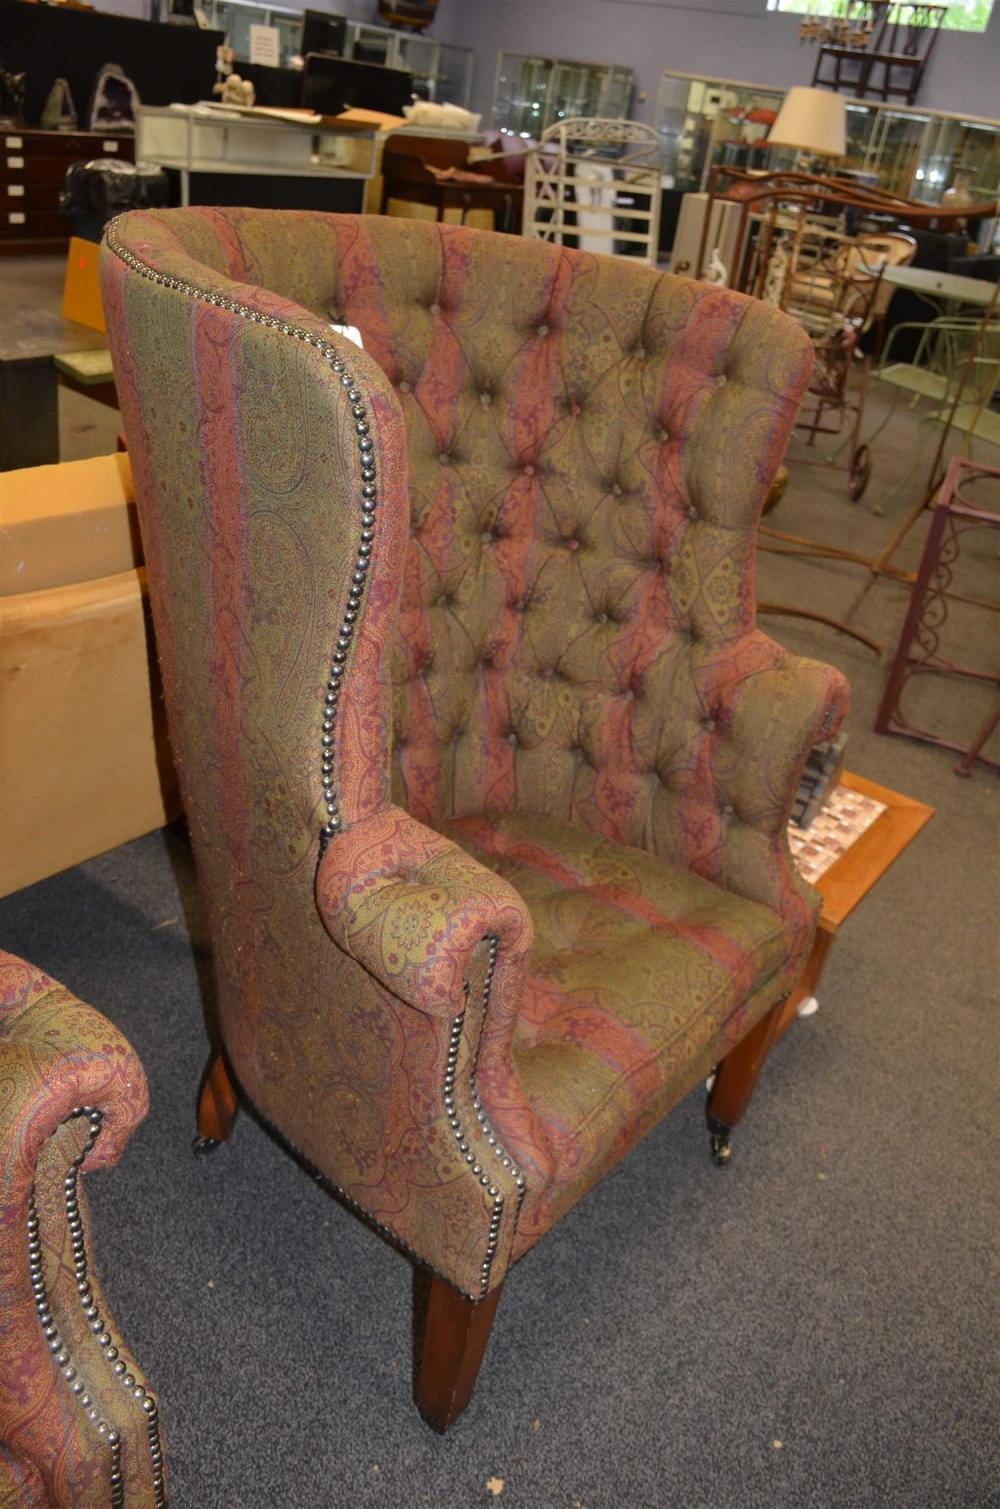 Sold Price Pair Ralph Lauren Tufted Upholstered Barrel Back Wing Chairs 45 H Seat Height 20 H October 2 0119 10 30 Am Edt